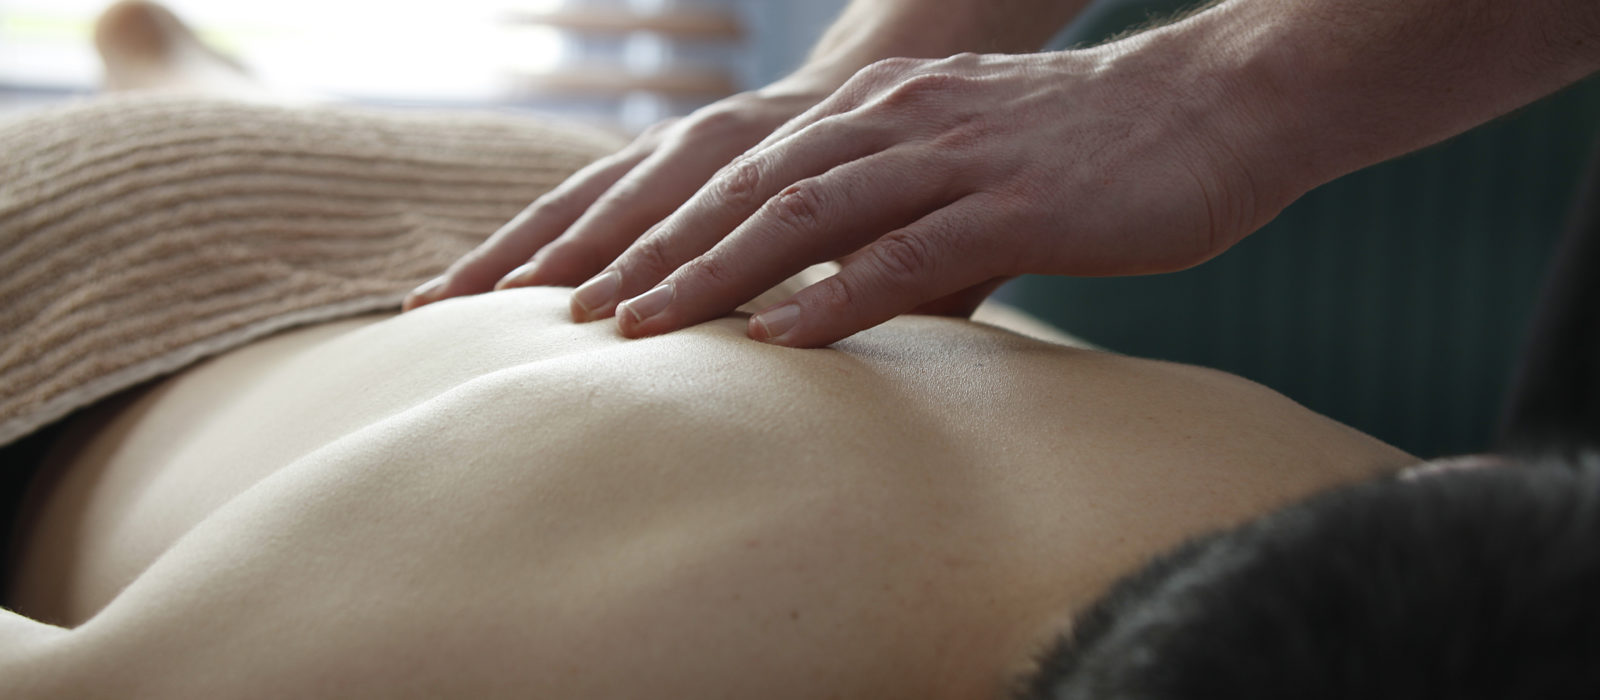 Activating your body to heal itself With Bowen Therapy At Setter's H.C.